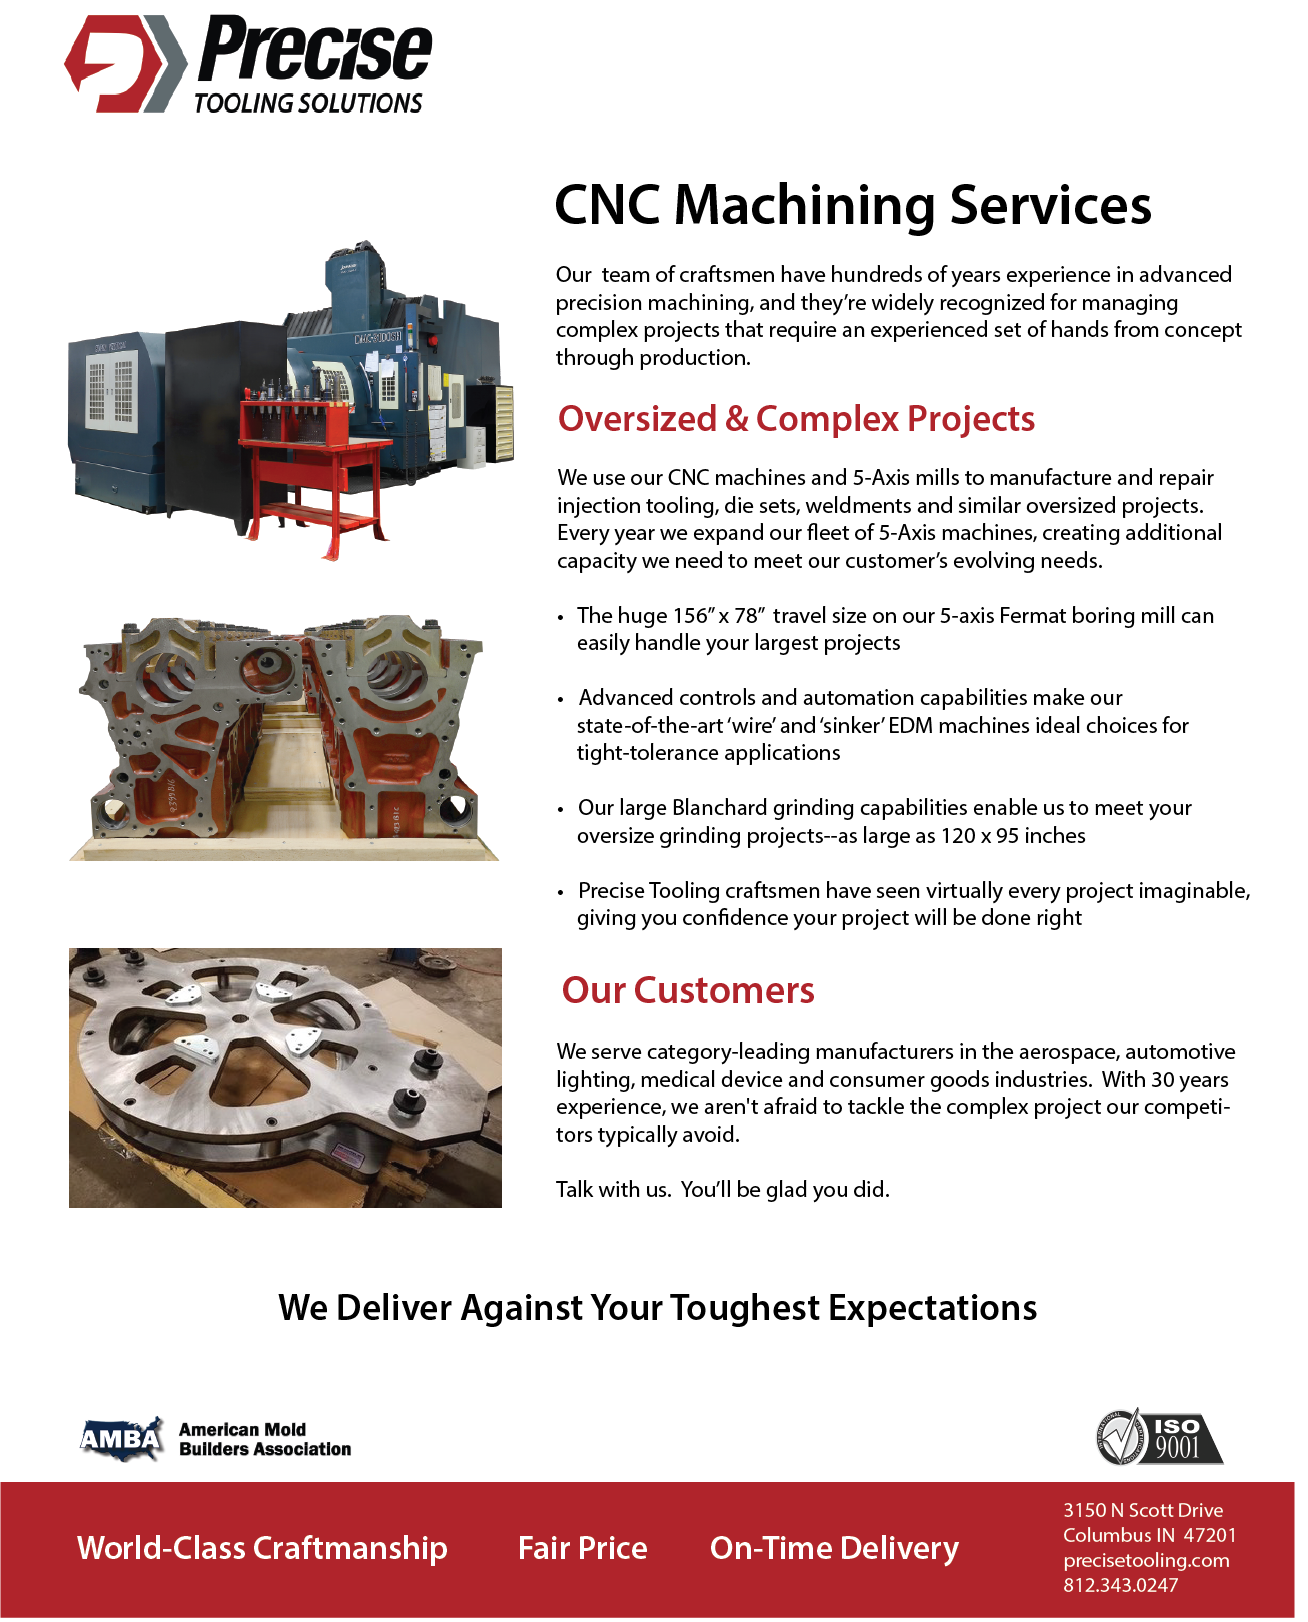 CNC Machining Overview